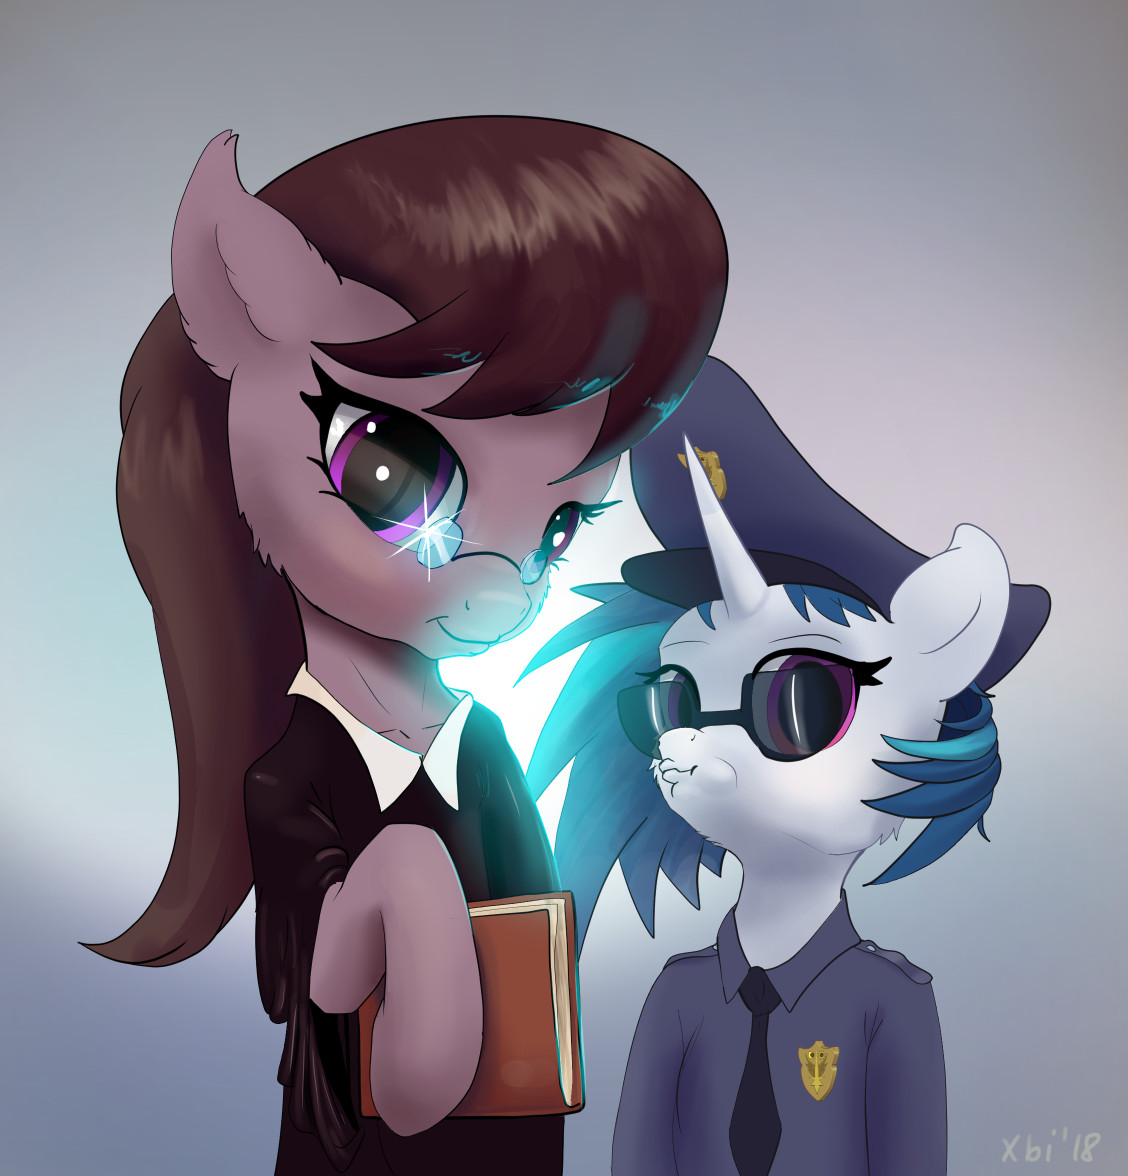 Octavia and Vinyl - Law and Order